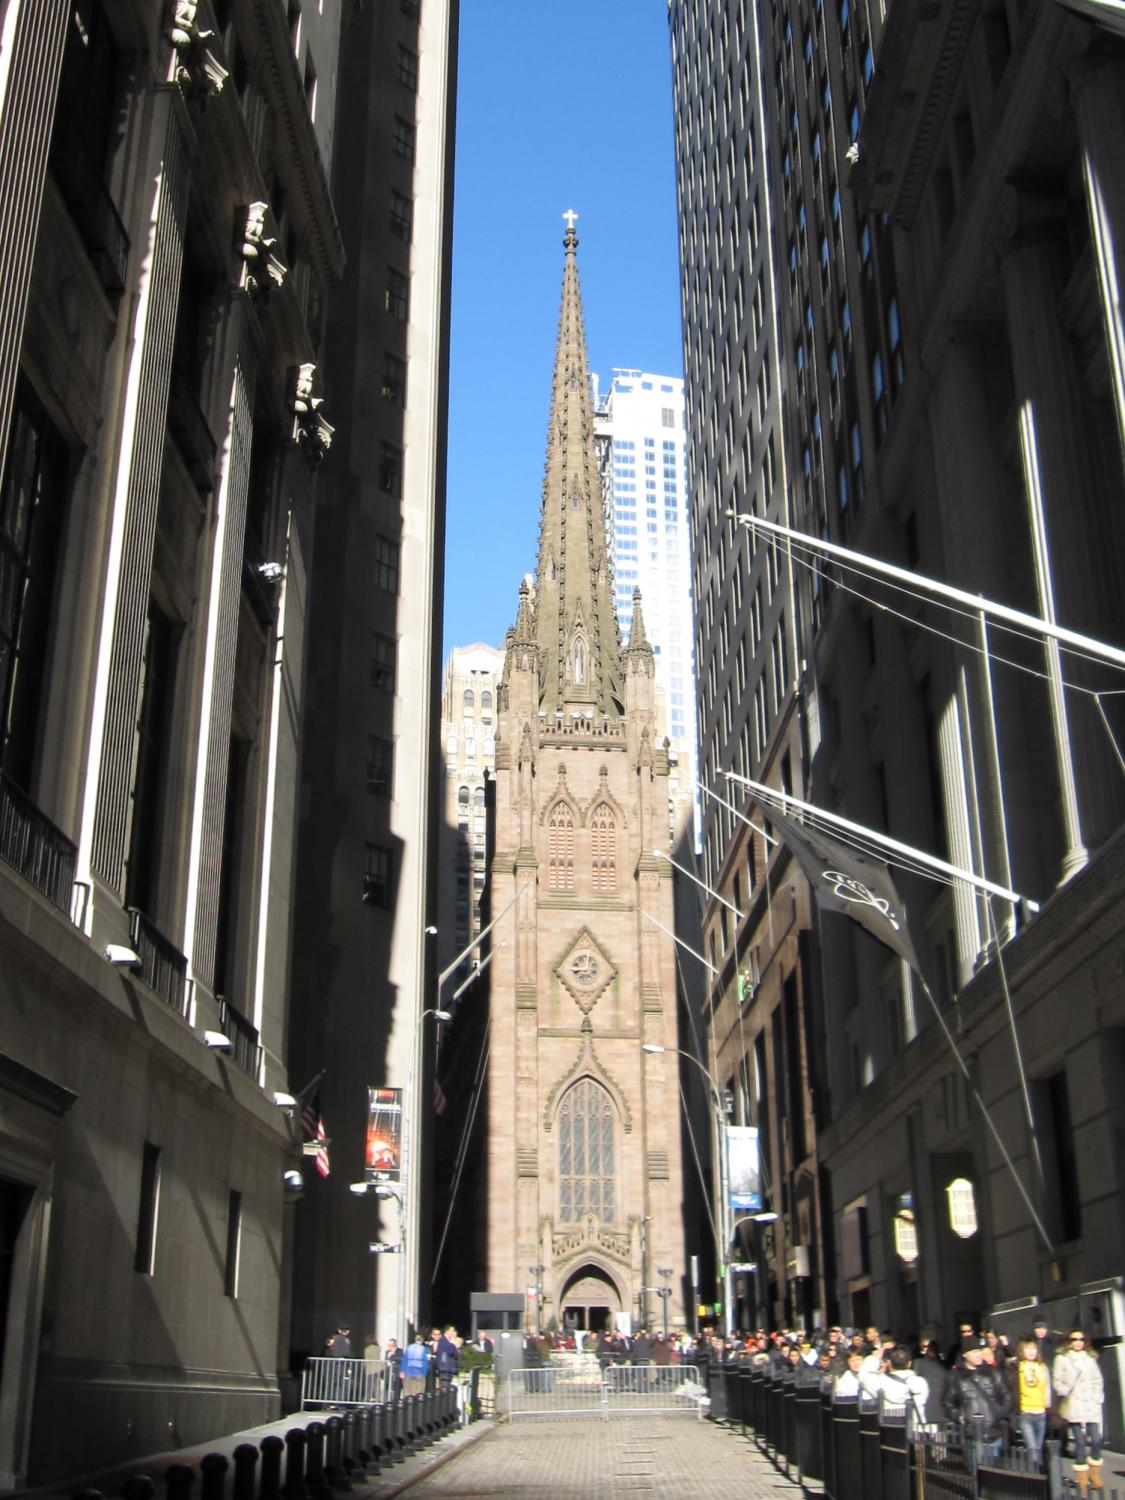 This image shows the Trinity church in New York. The tower is designed in a Gothic Revival style.